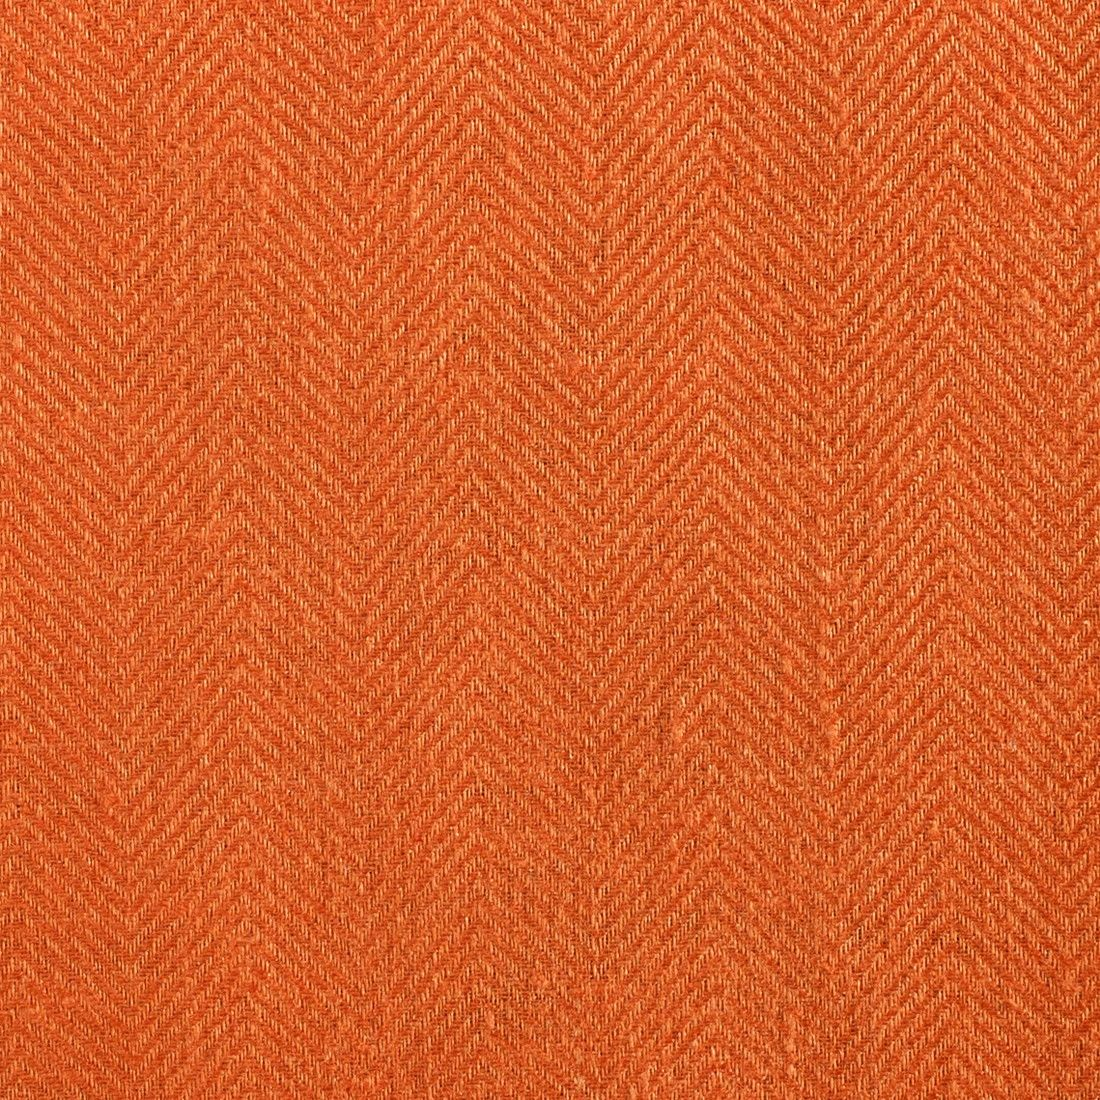 Anichini Fabrics Nobel Linen Herringbone Burnt Orange Residential Fabric An Orange